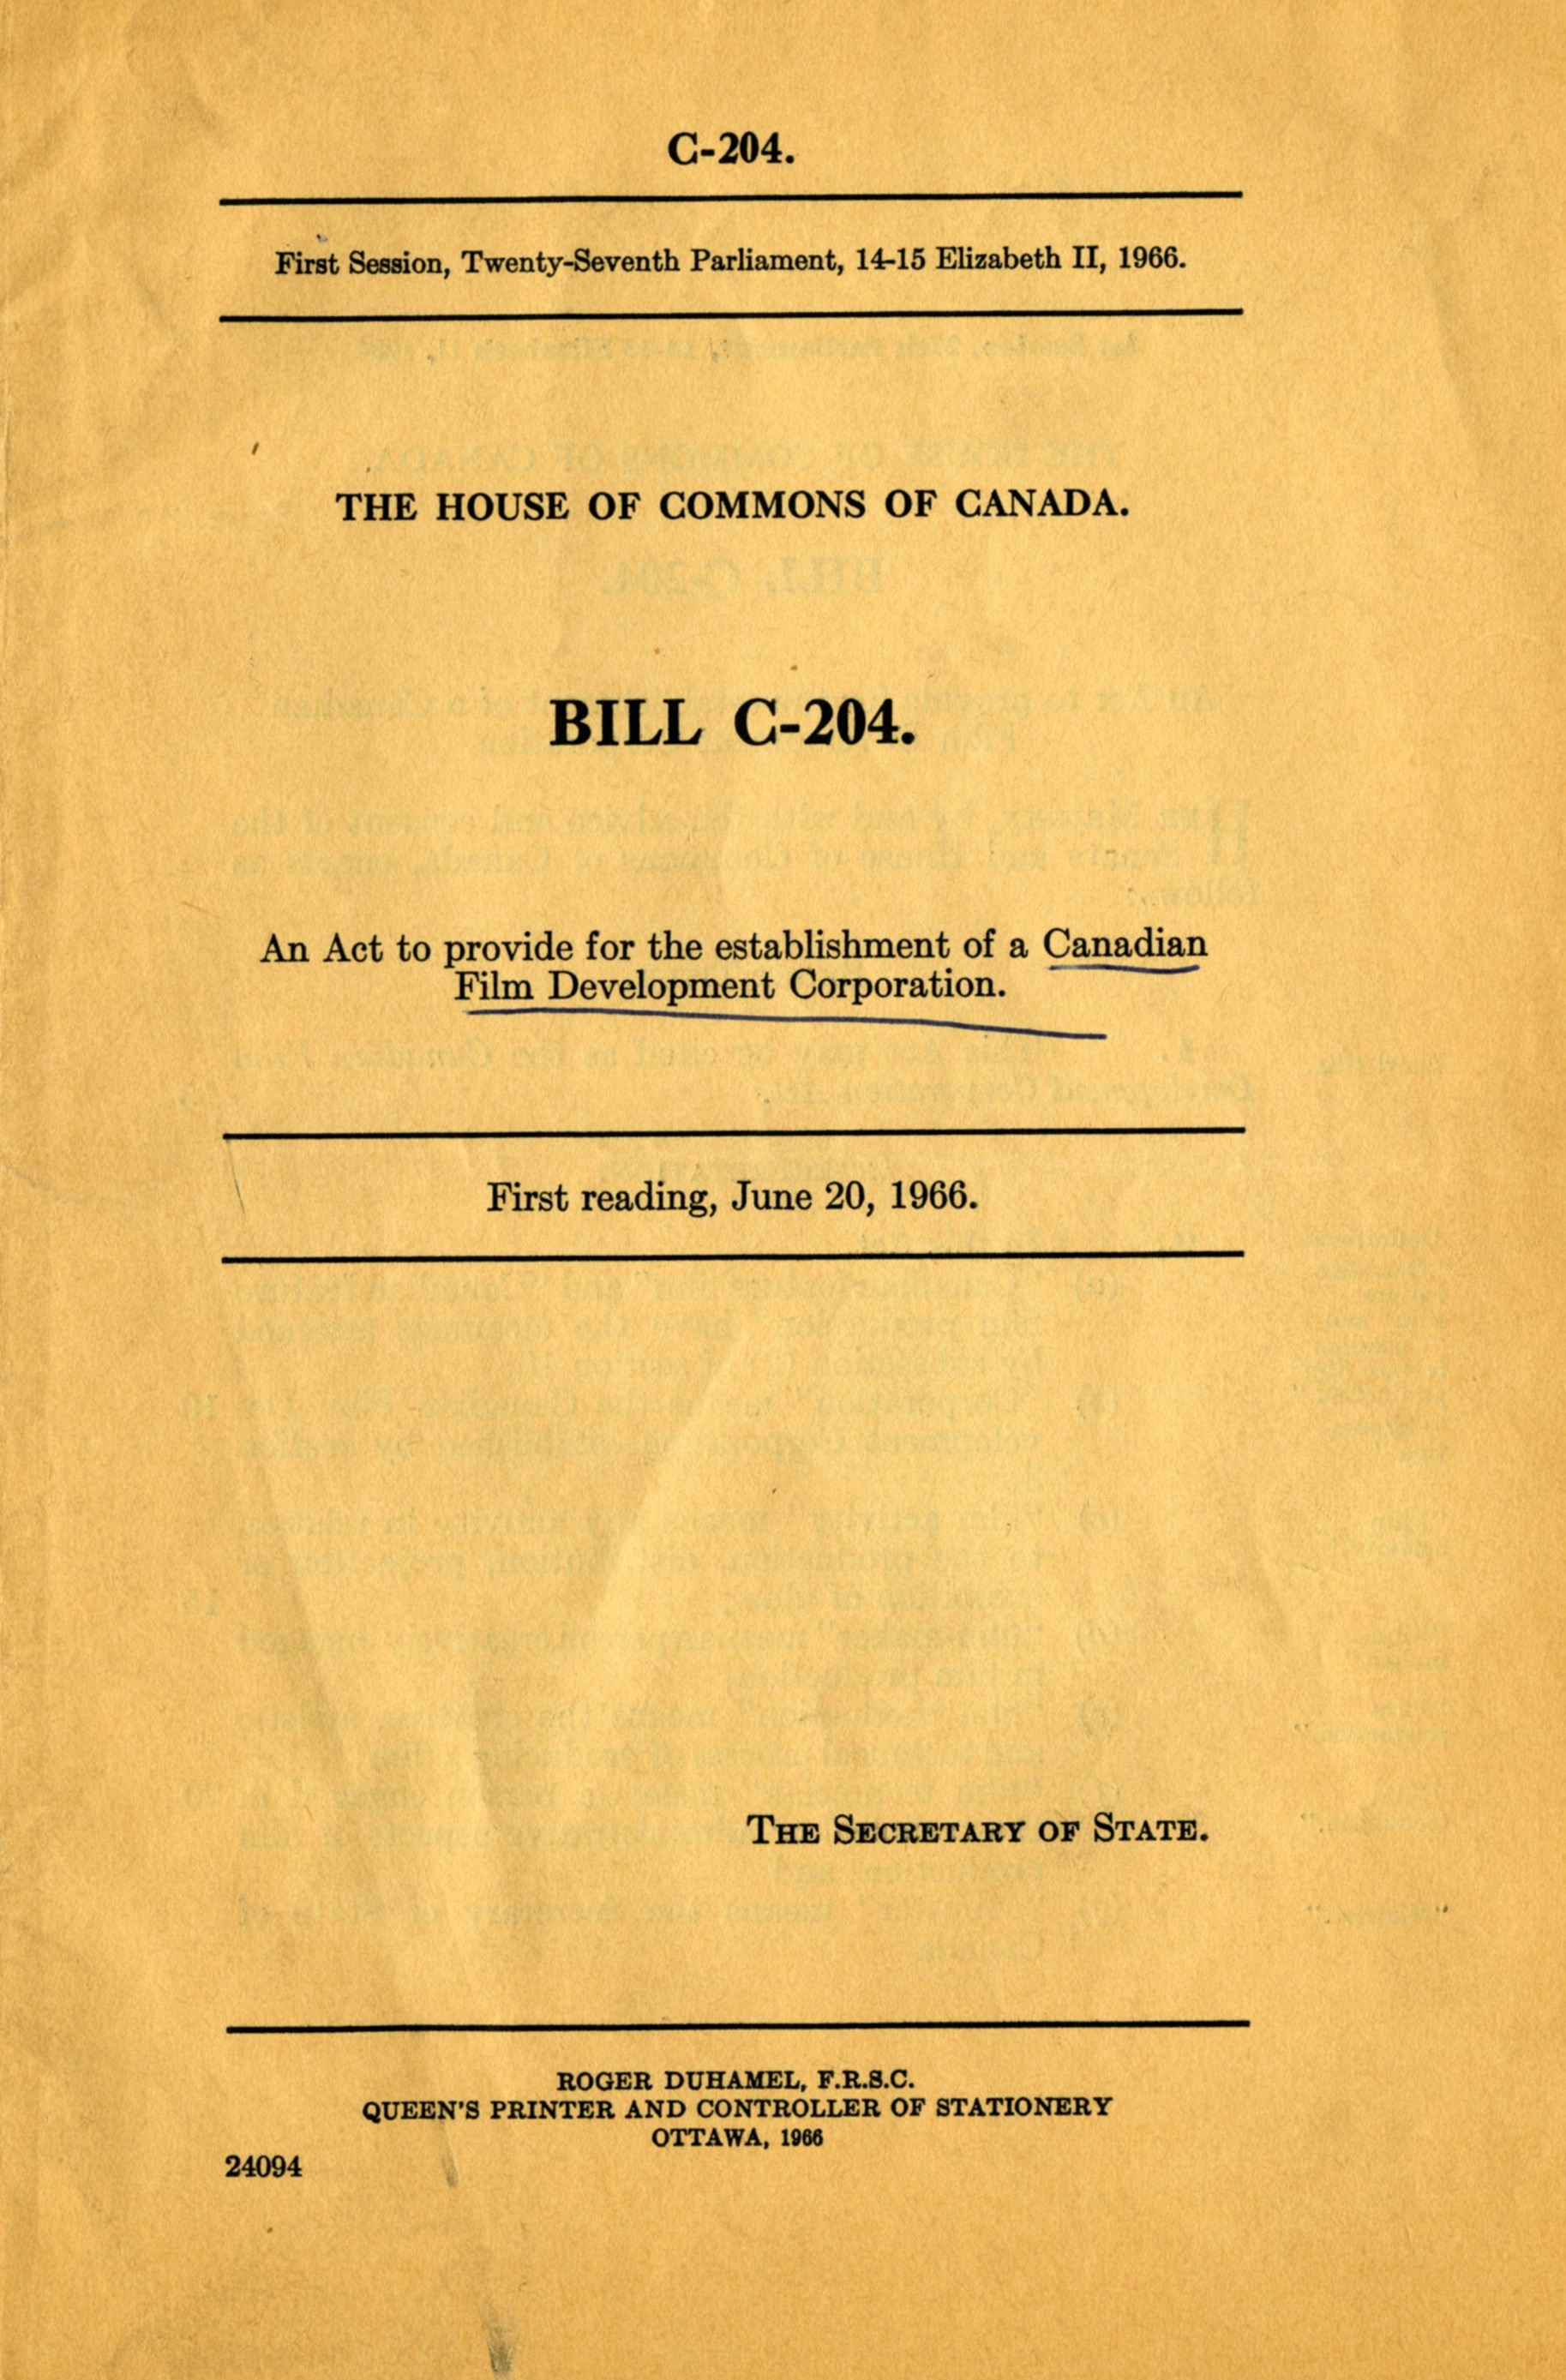 The White Paper for the establishment of the Canadian Film Development Corporation